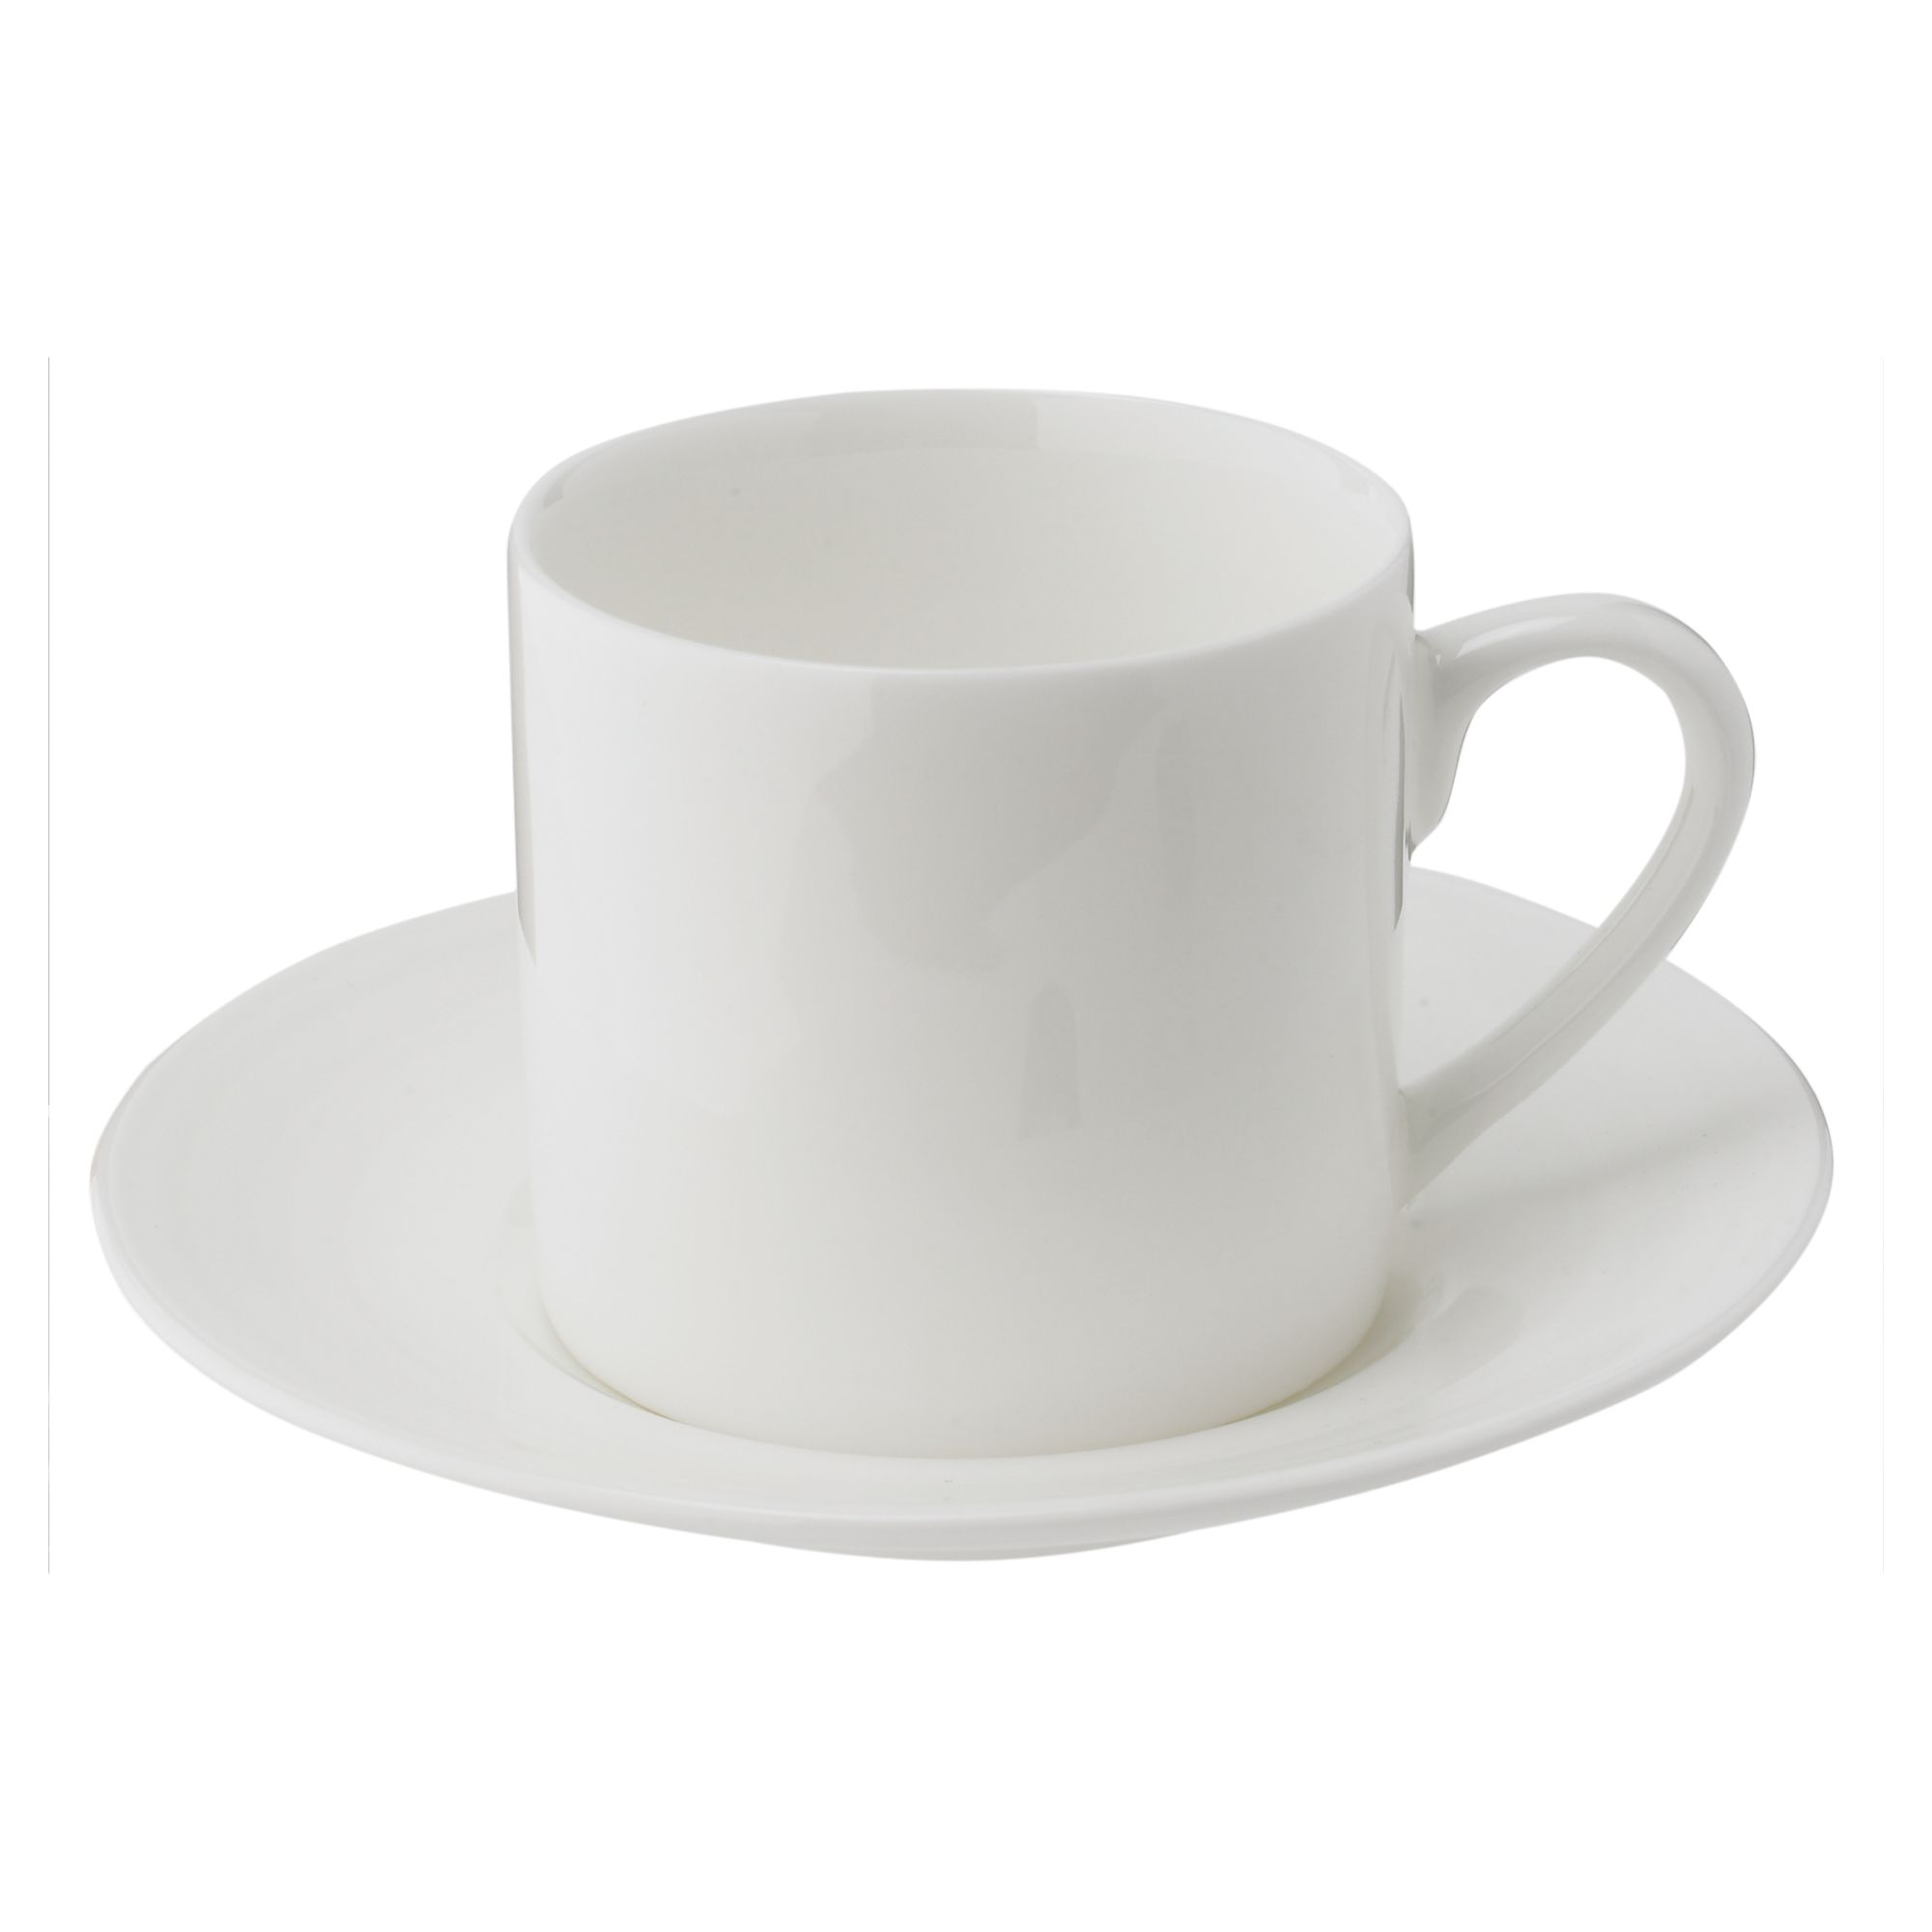 Soho Bone China Espresso Cup & Saucer